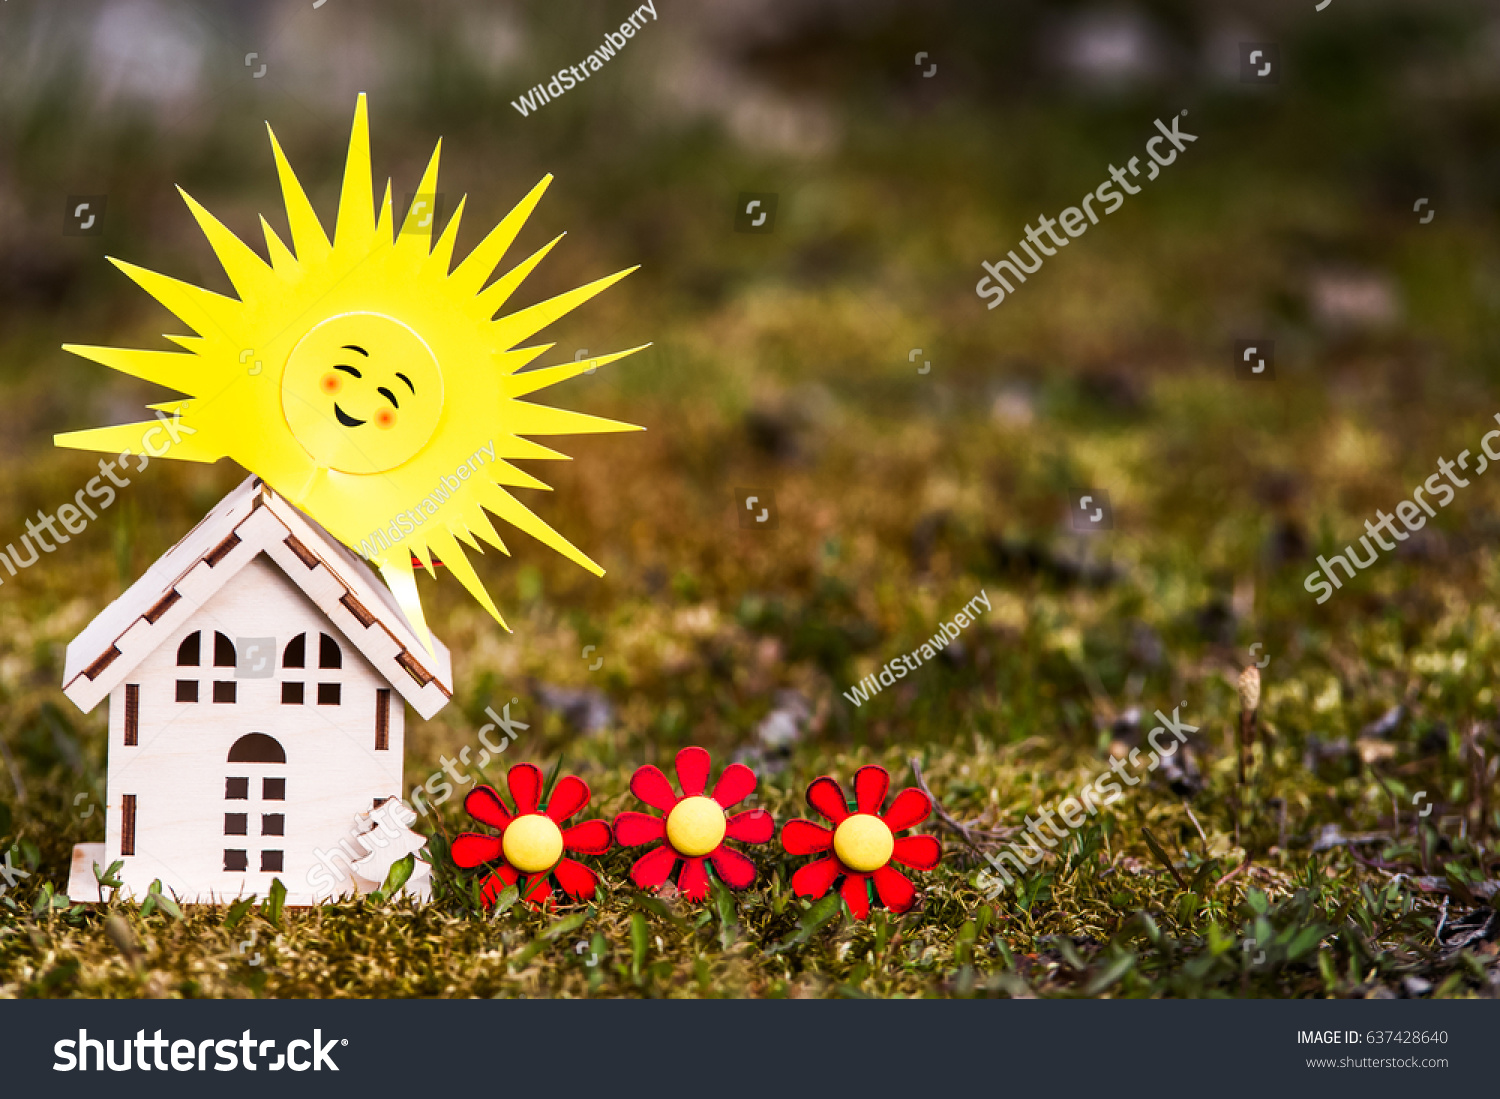 Toy house sun on beautiful background stock photo 637428640 toy house with a sun on a beautiful background symbol of happiness family and biocorpaavc Image collections